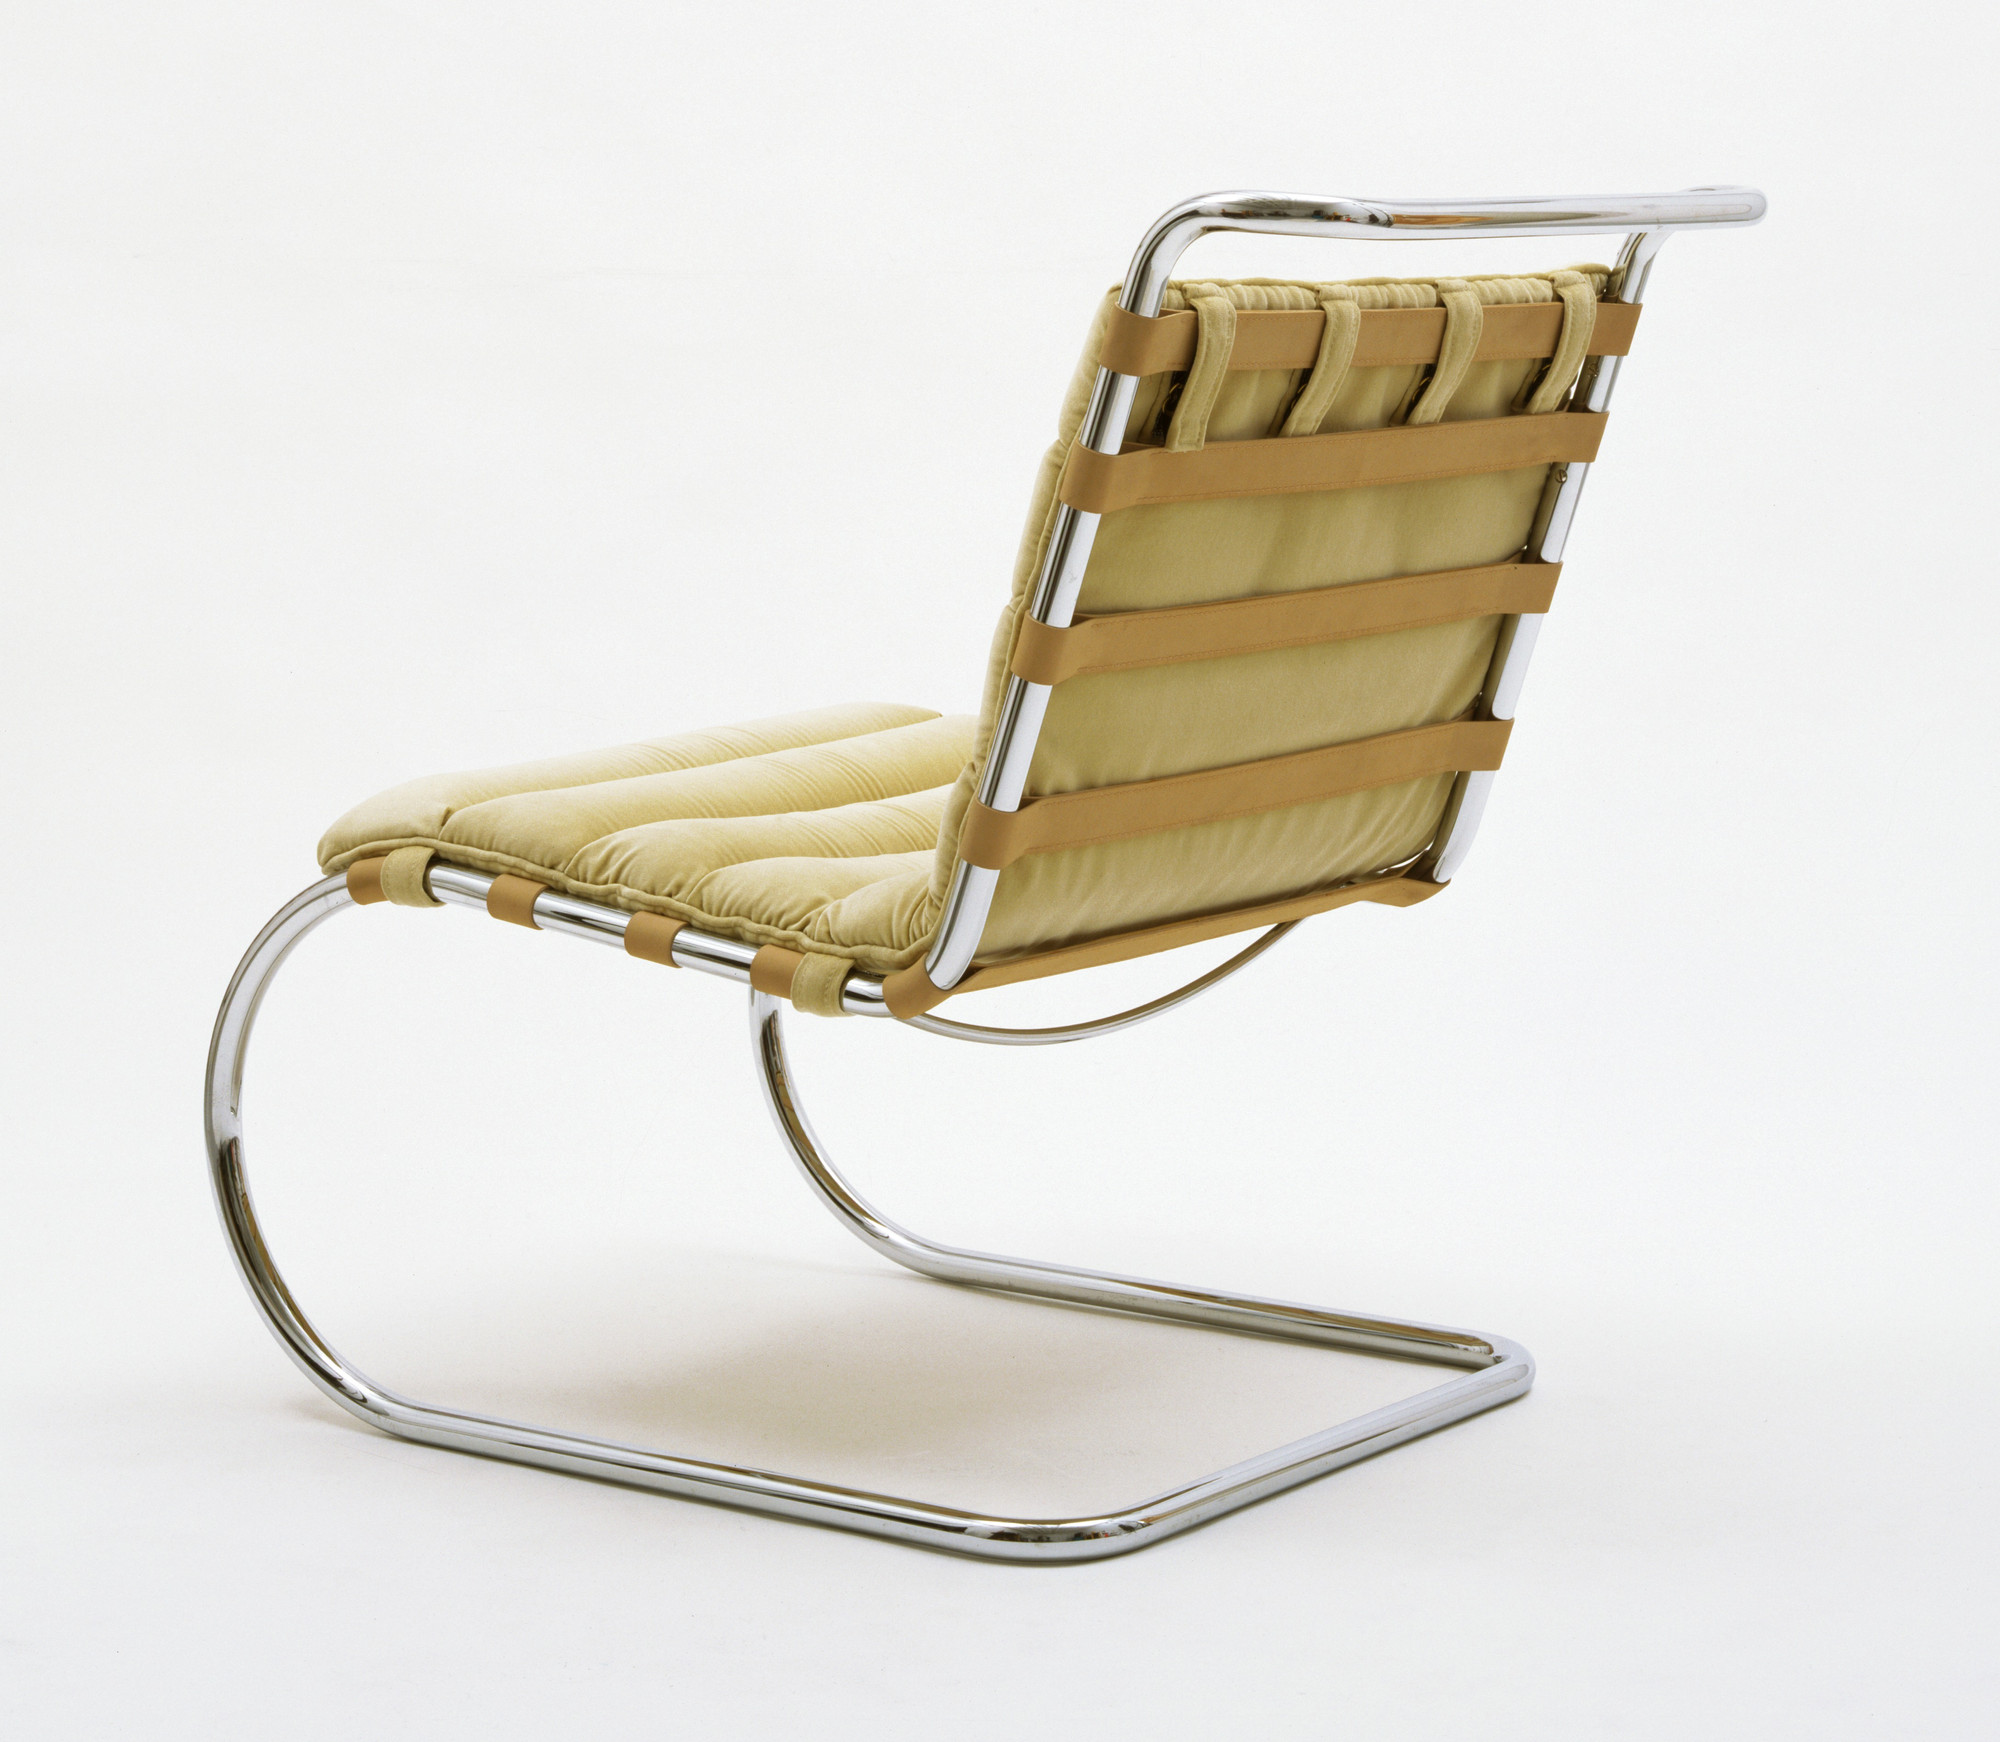 Groovy Ludwig Mies Van Der Rohe Mr Lounge Chair Model 34 Squirreltailoven Fun Painted Chair Ideas Images Squirreltailovenorg